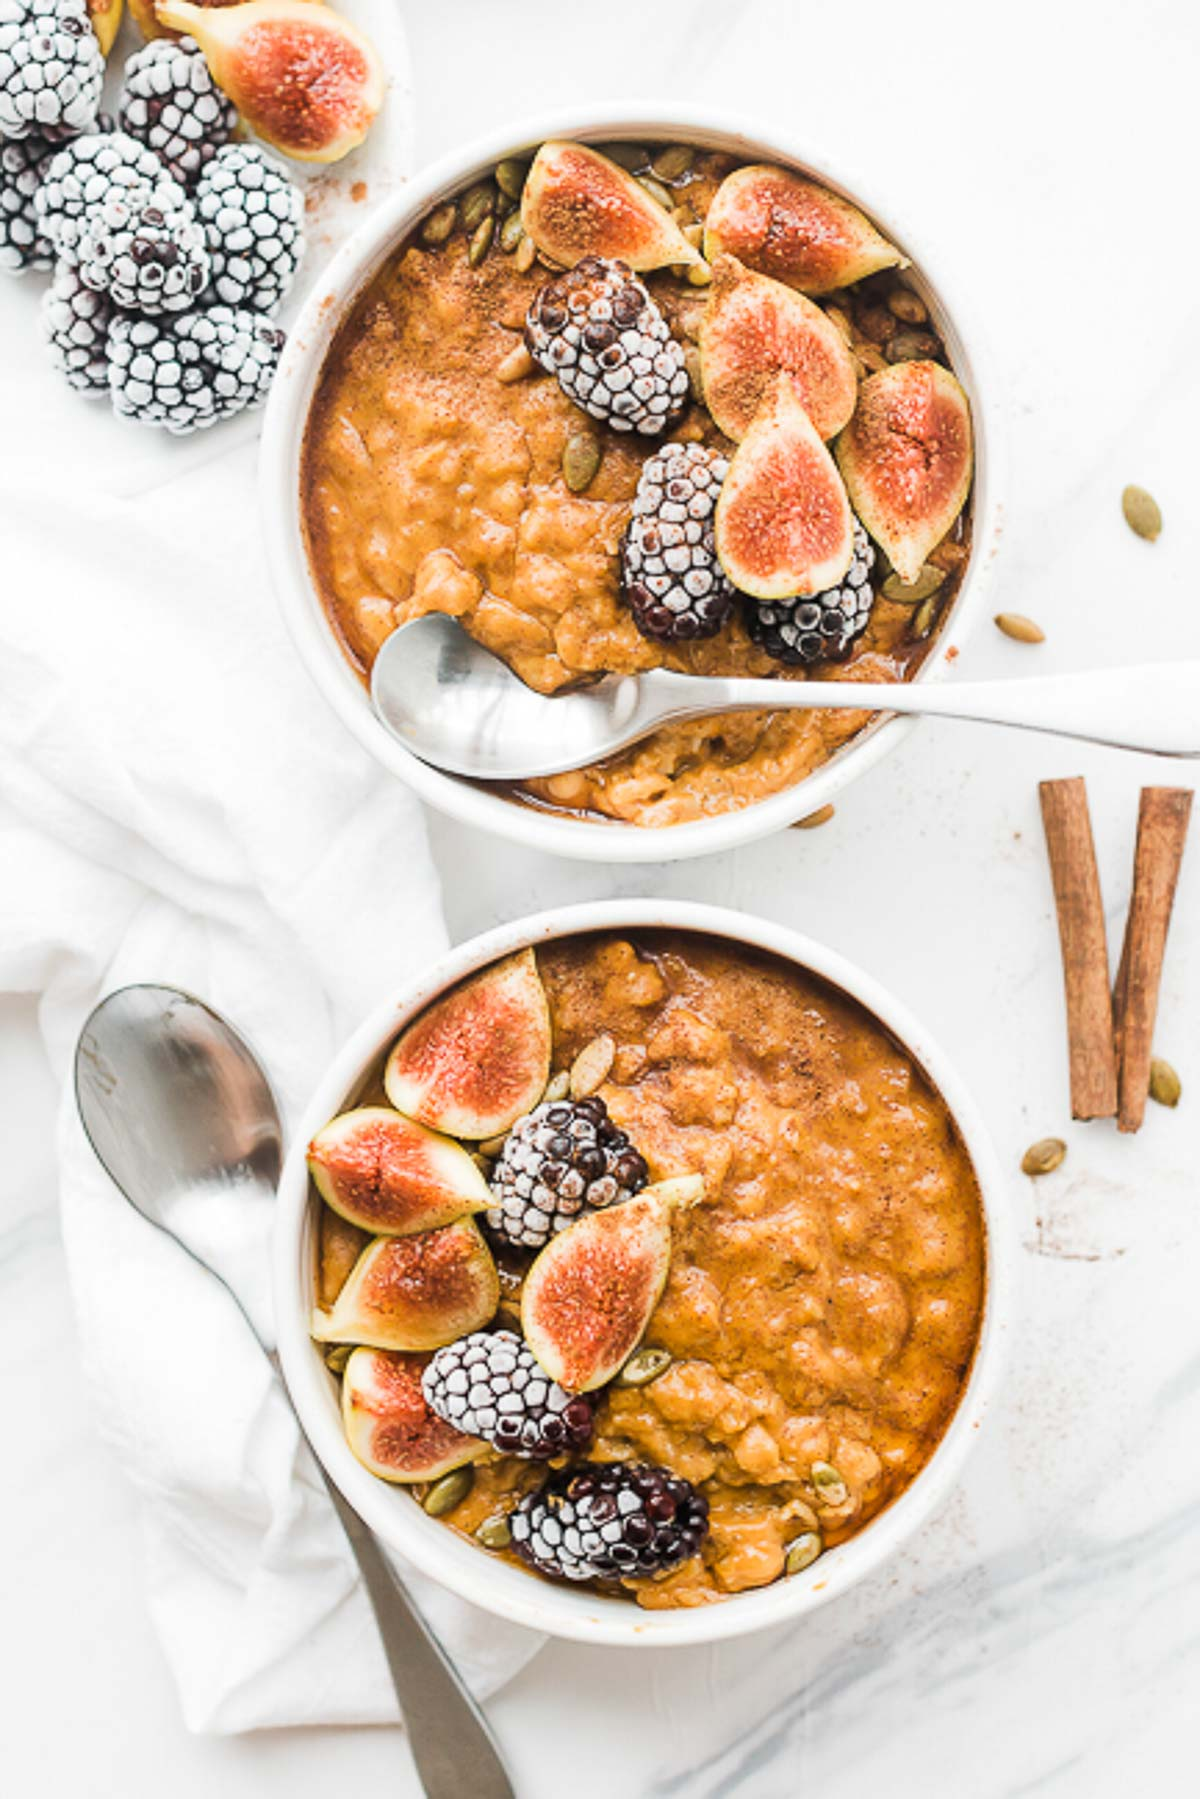 Two bowls of pumpkin oatmeal in white bowls.  There are silver spoons and cinnamon sticks to the side.